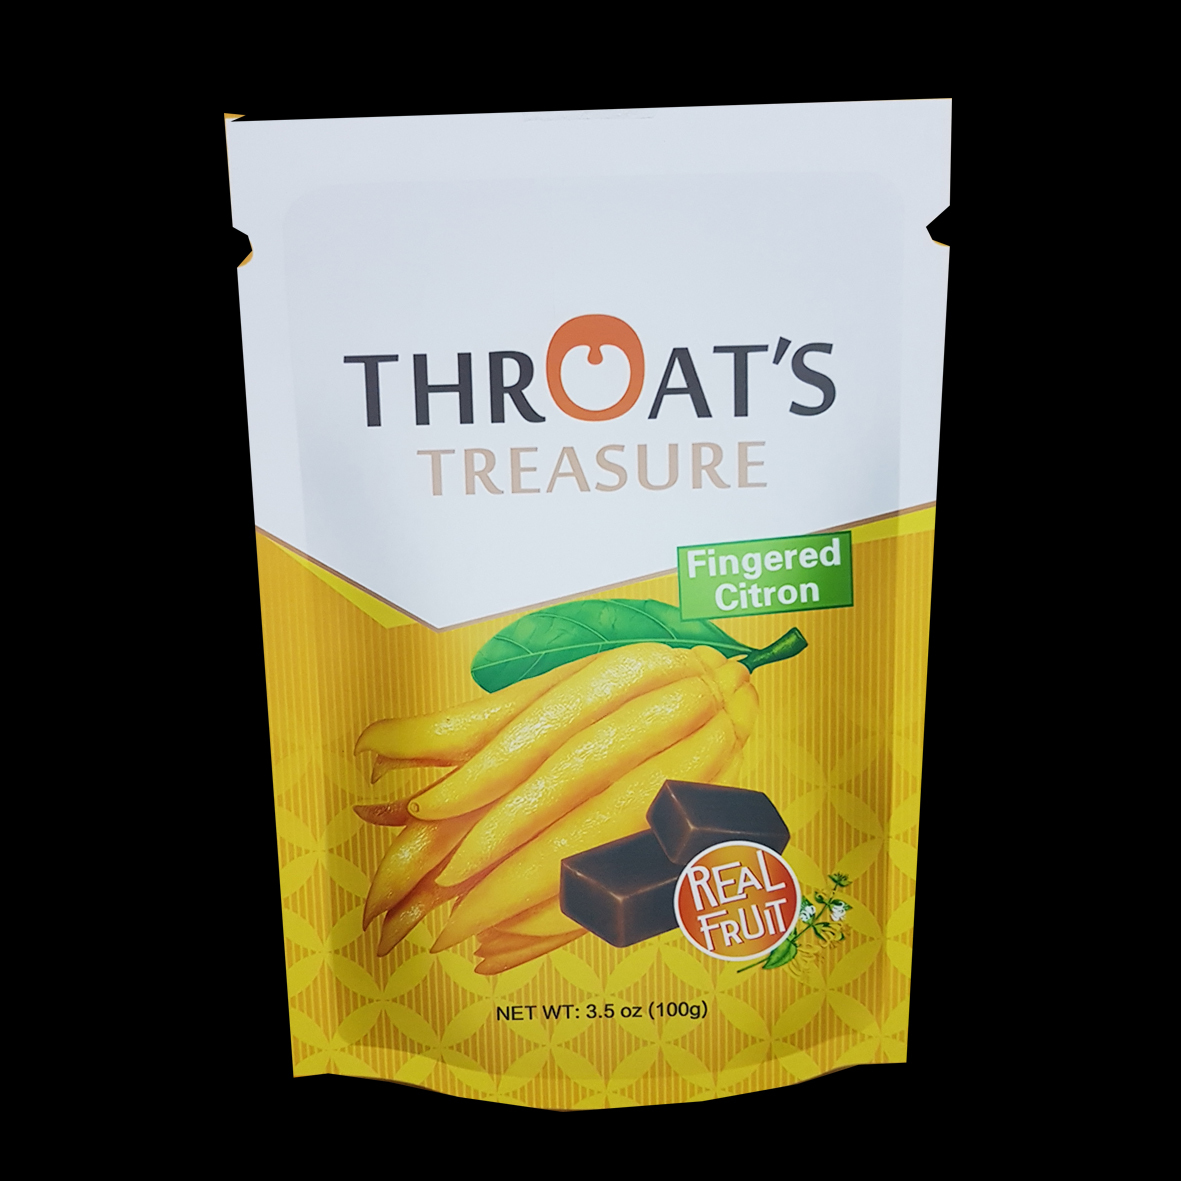 THroat Treasure FINGERED CITRON.jpg